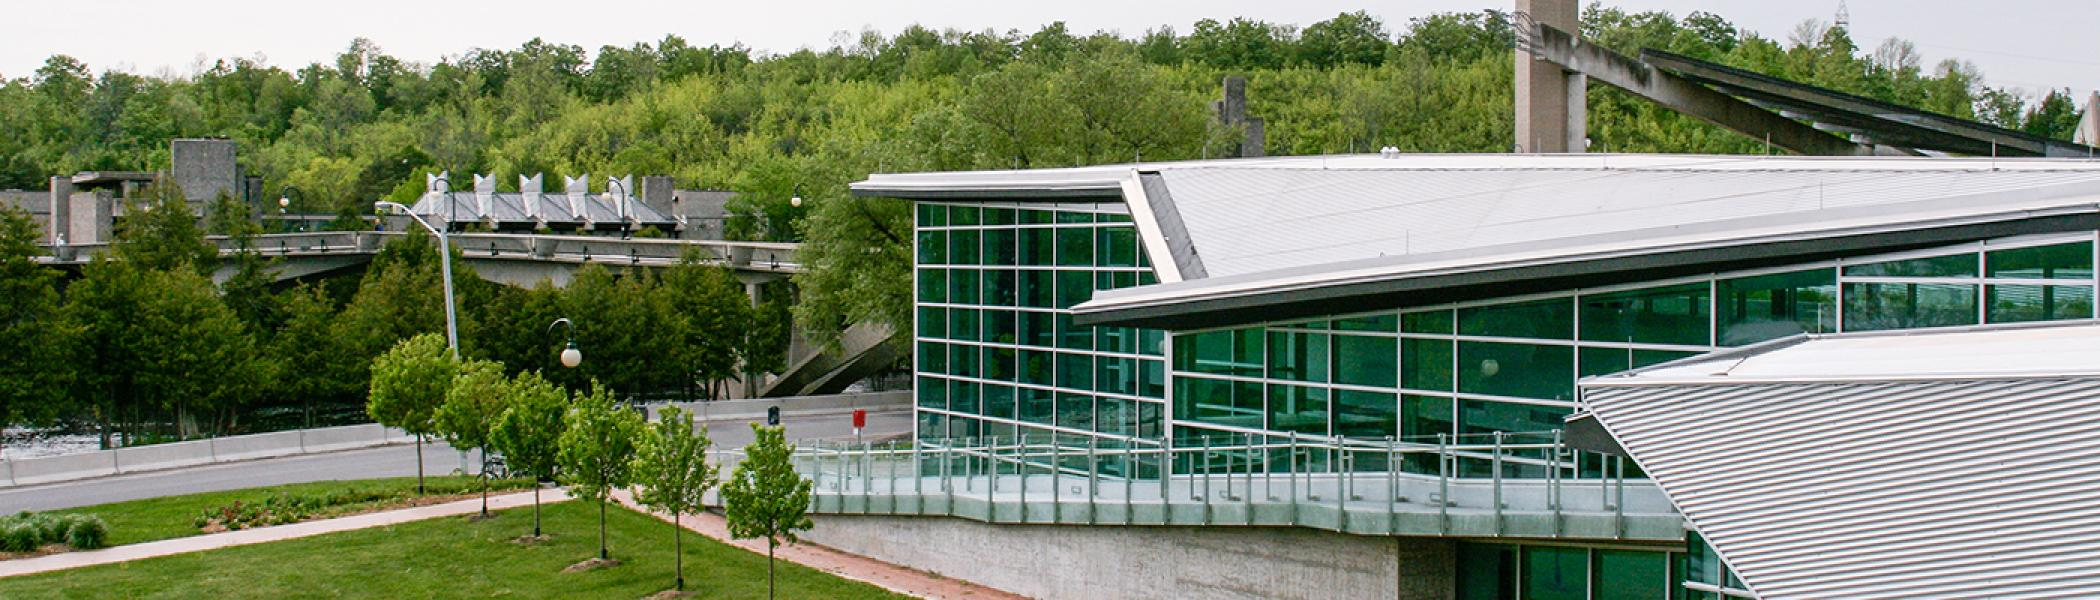 Exterior view of the chemistry building across the Otonabee river